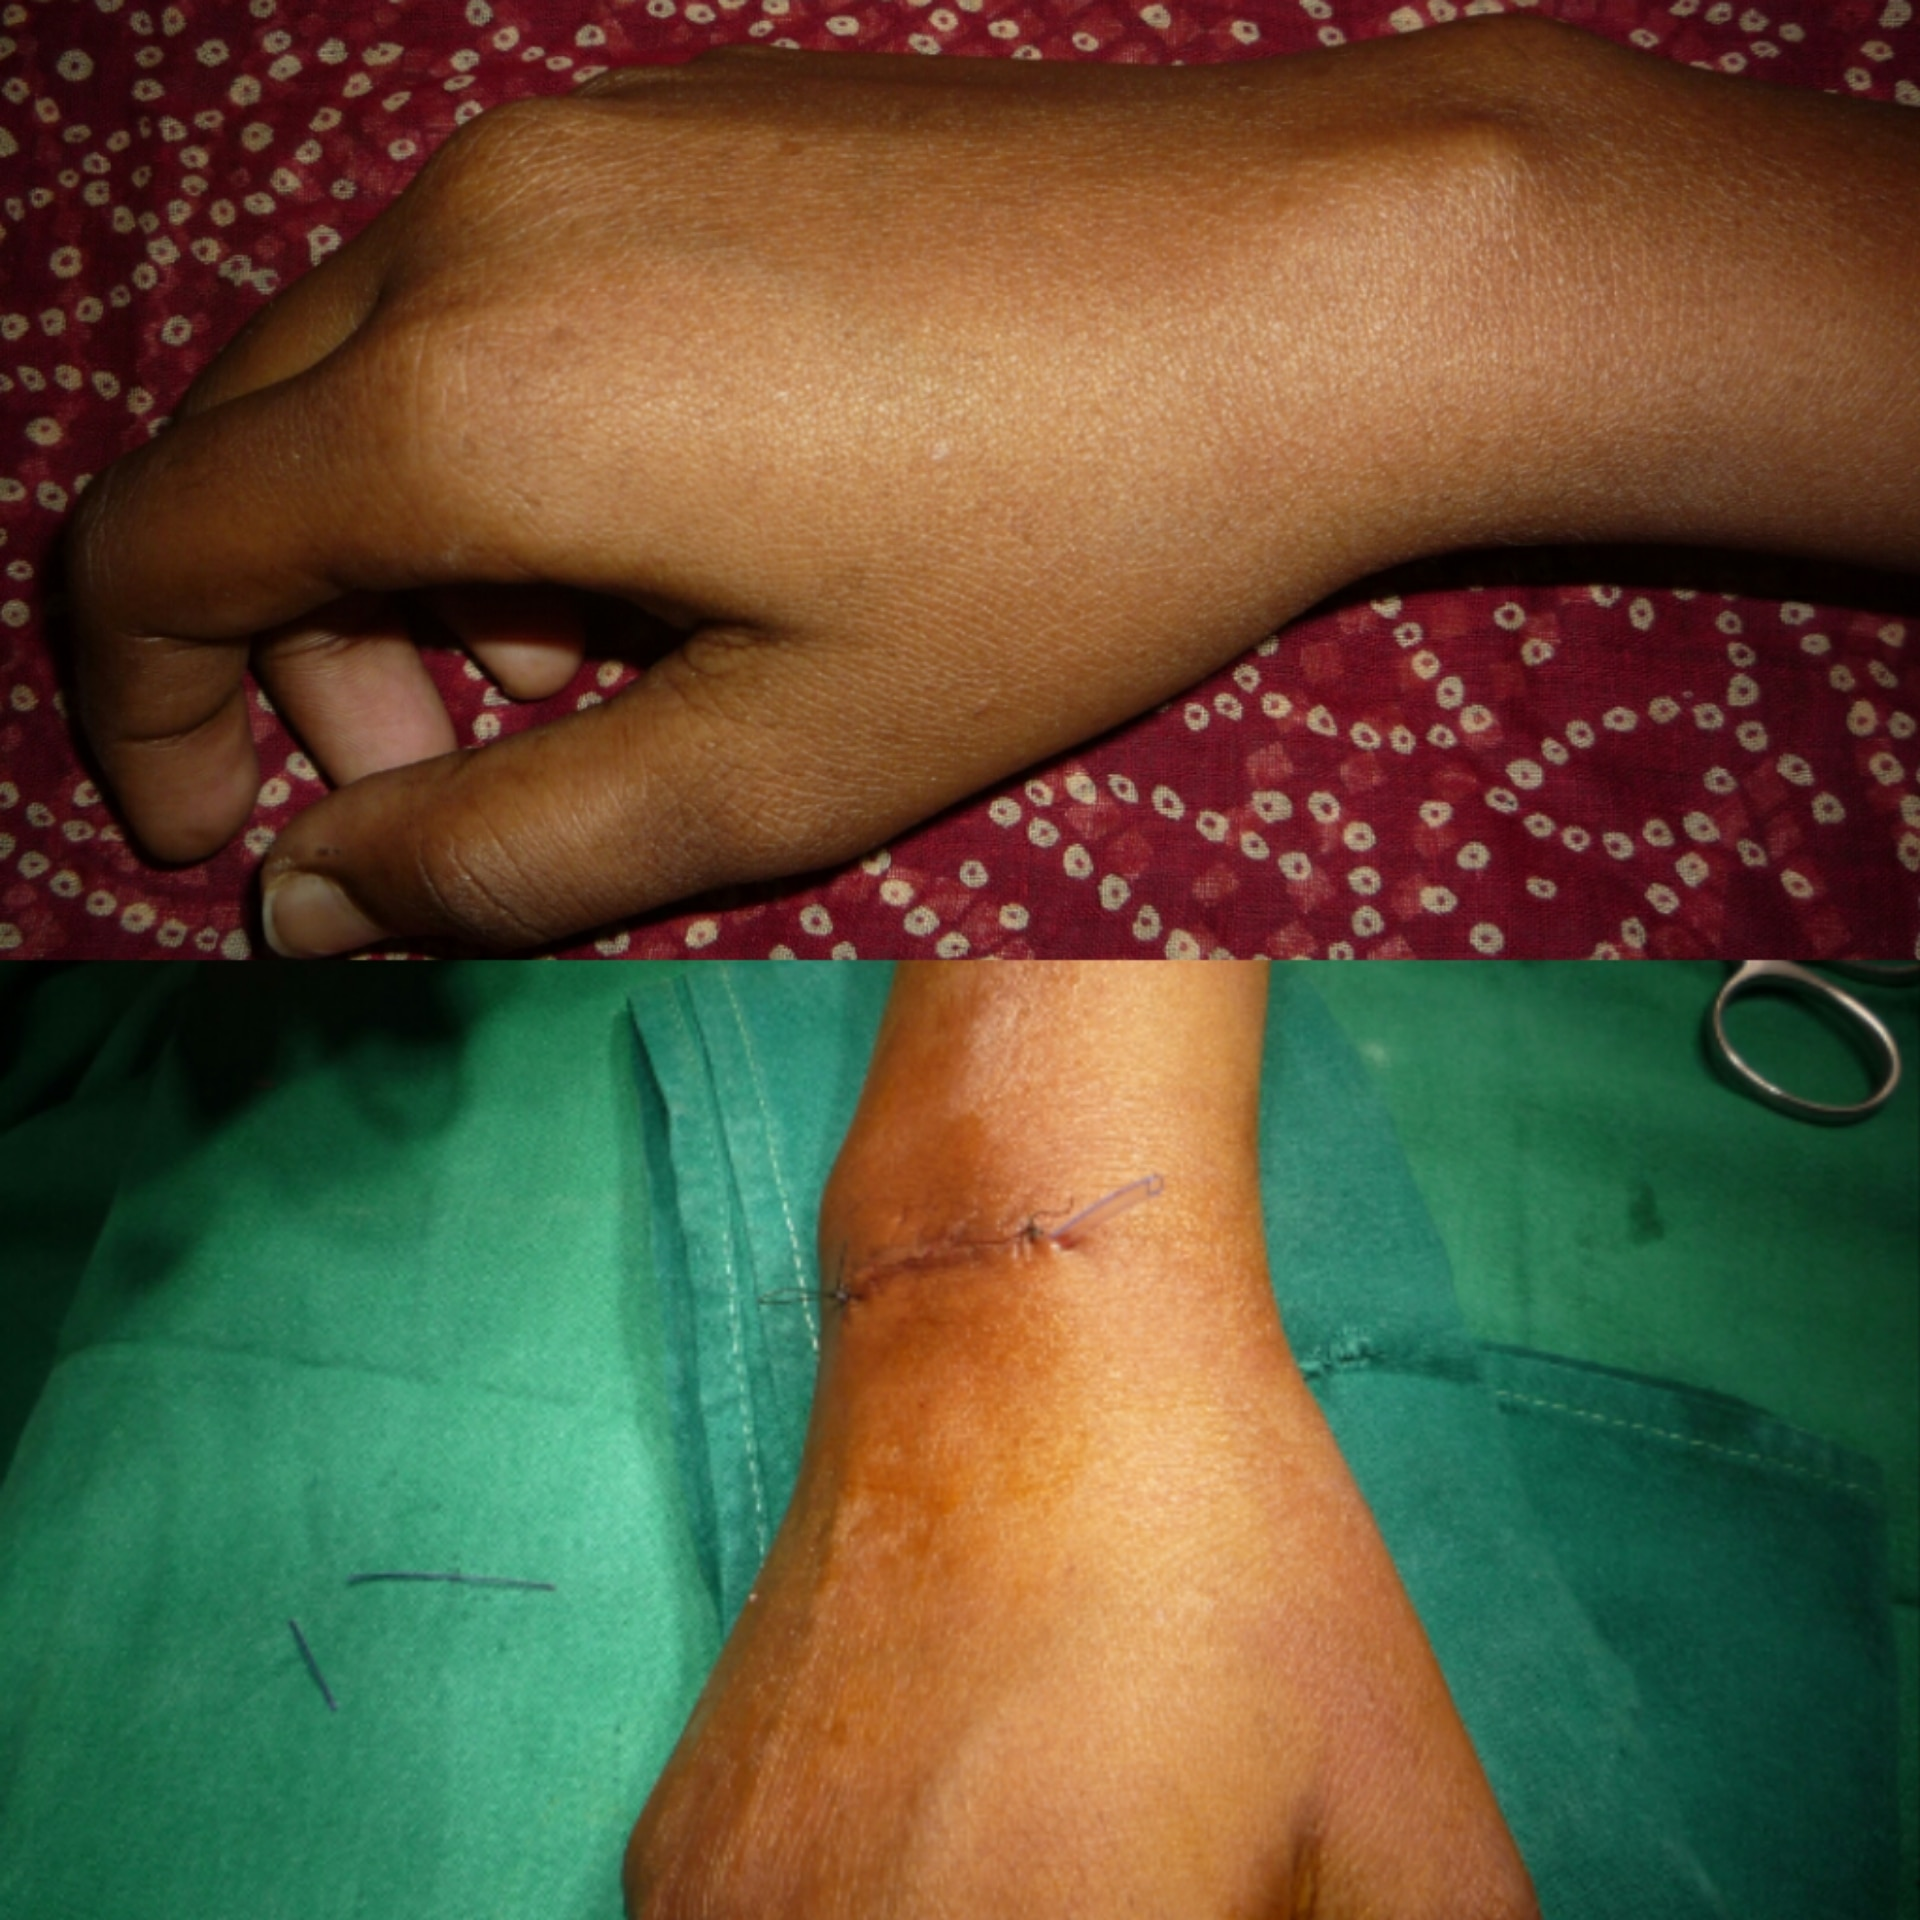 EXCISION OF GANGLION